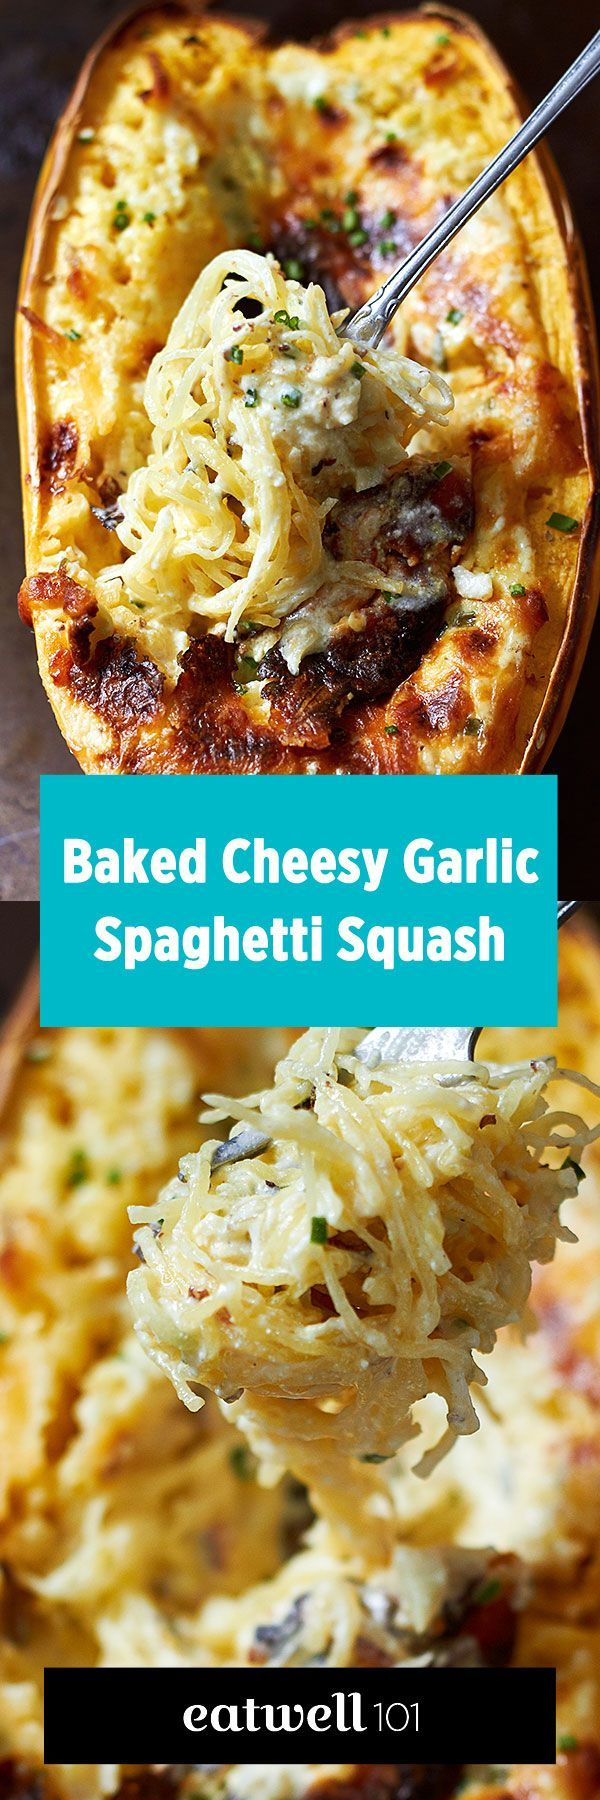 These baked spaghetti squash bowls stuffed with a creamy garlic and 4-cheese sauce are extremely delicious, and super easy to make! If you're looking for a comf